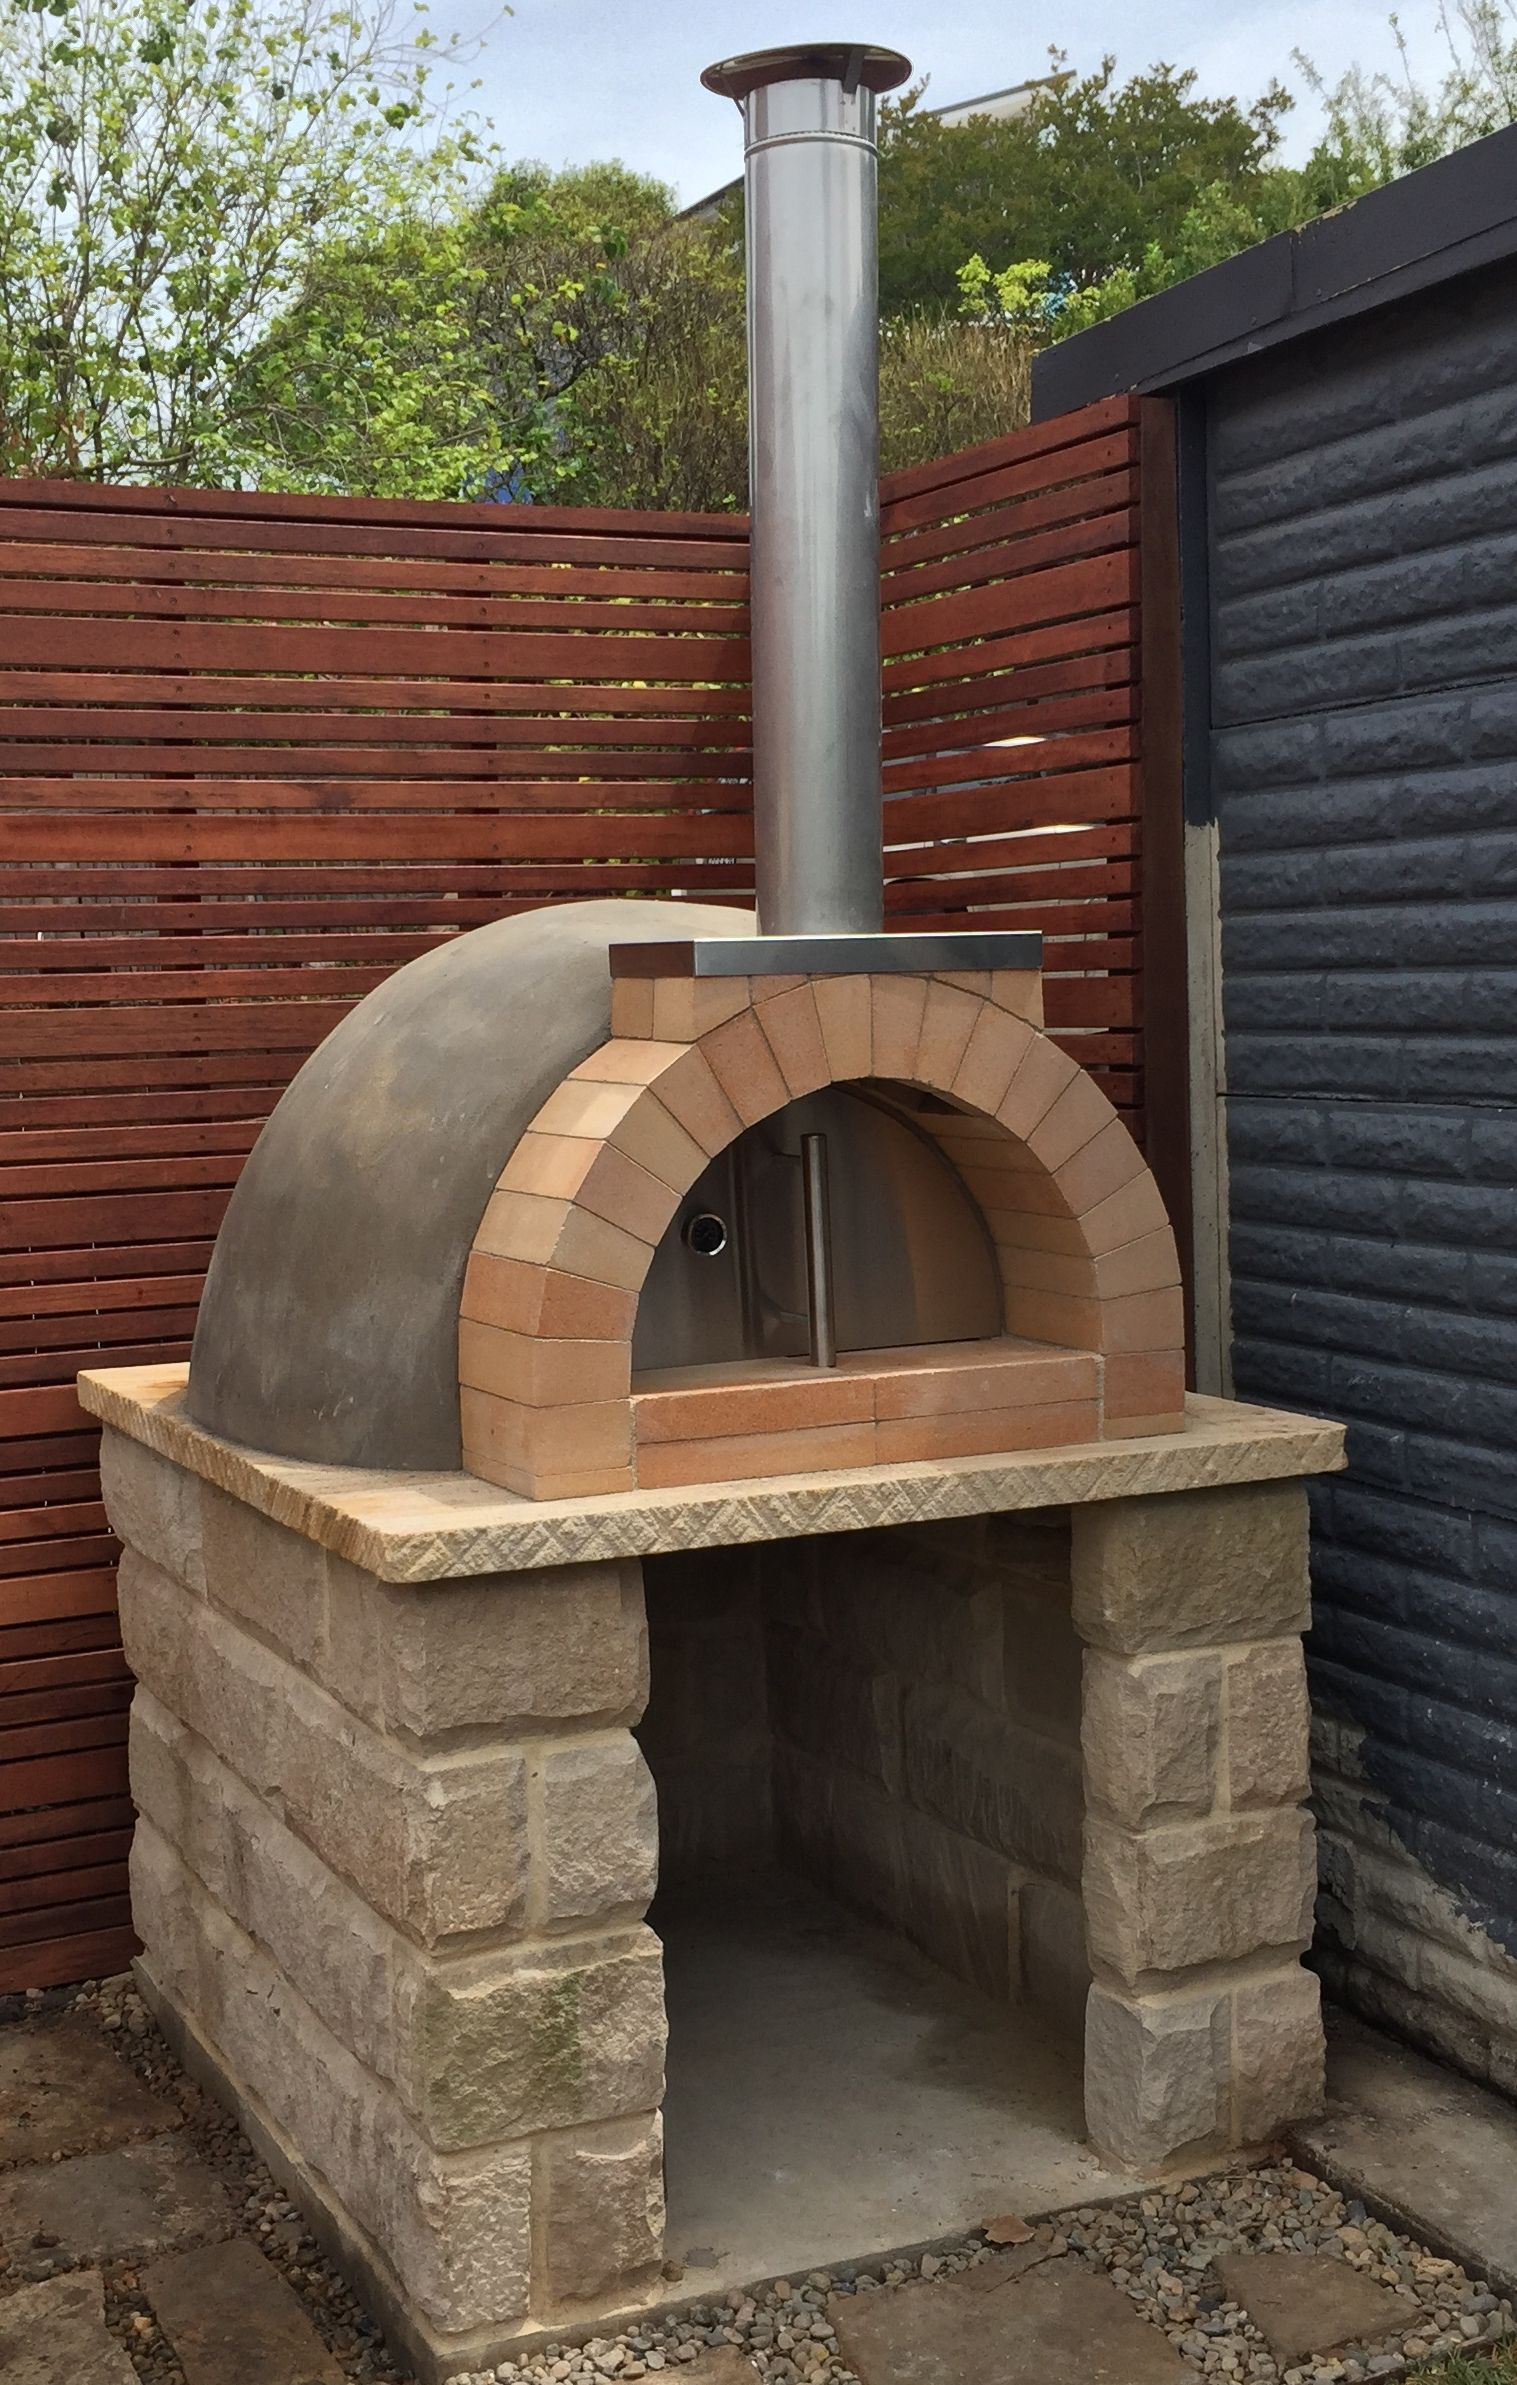 pizza oven kits pizza ovens oven ideas wood fired oven outdoor oven